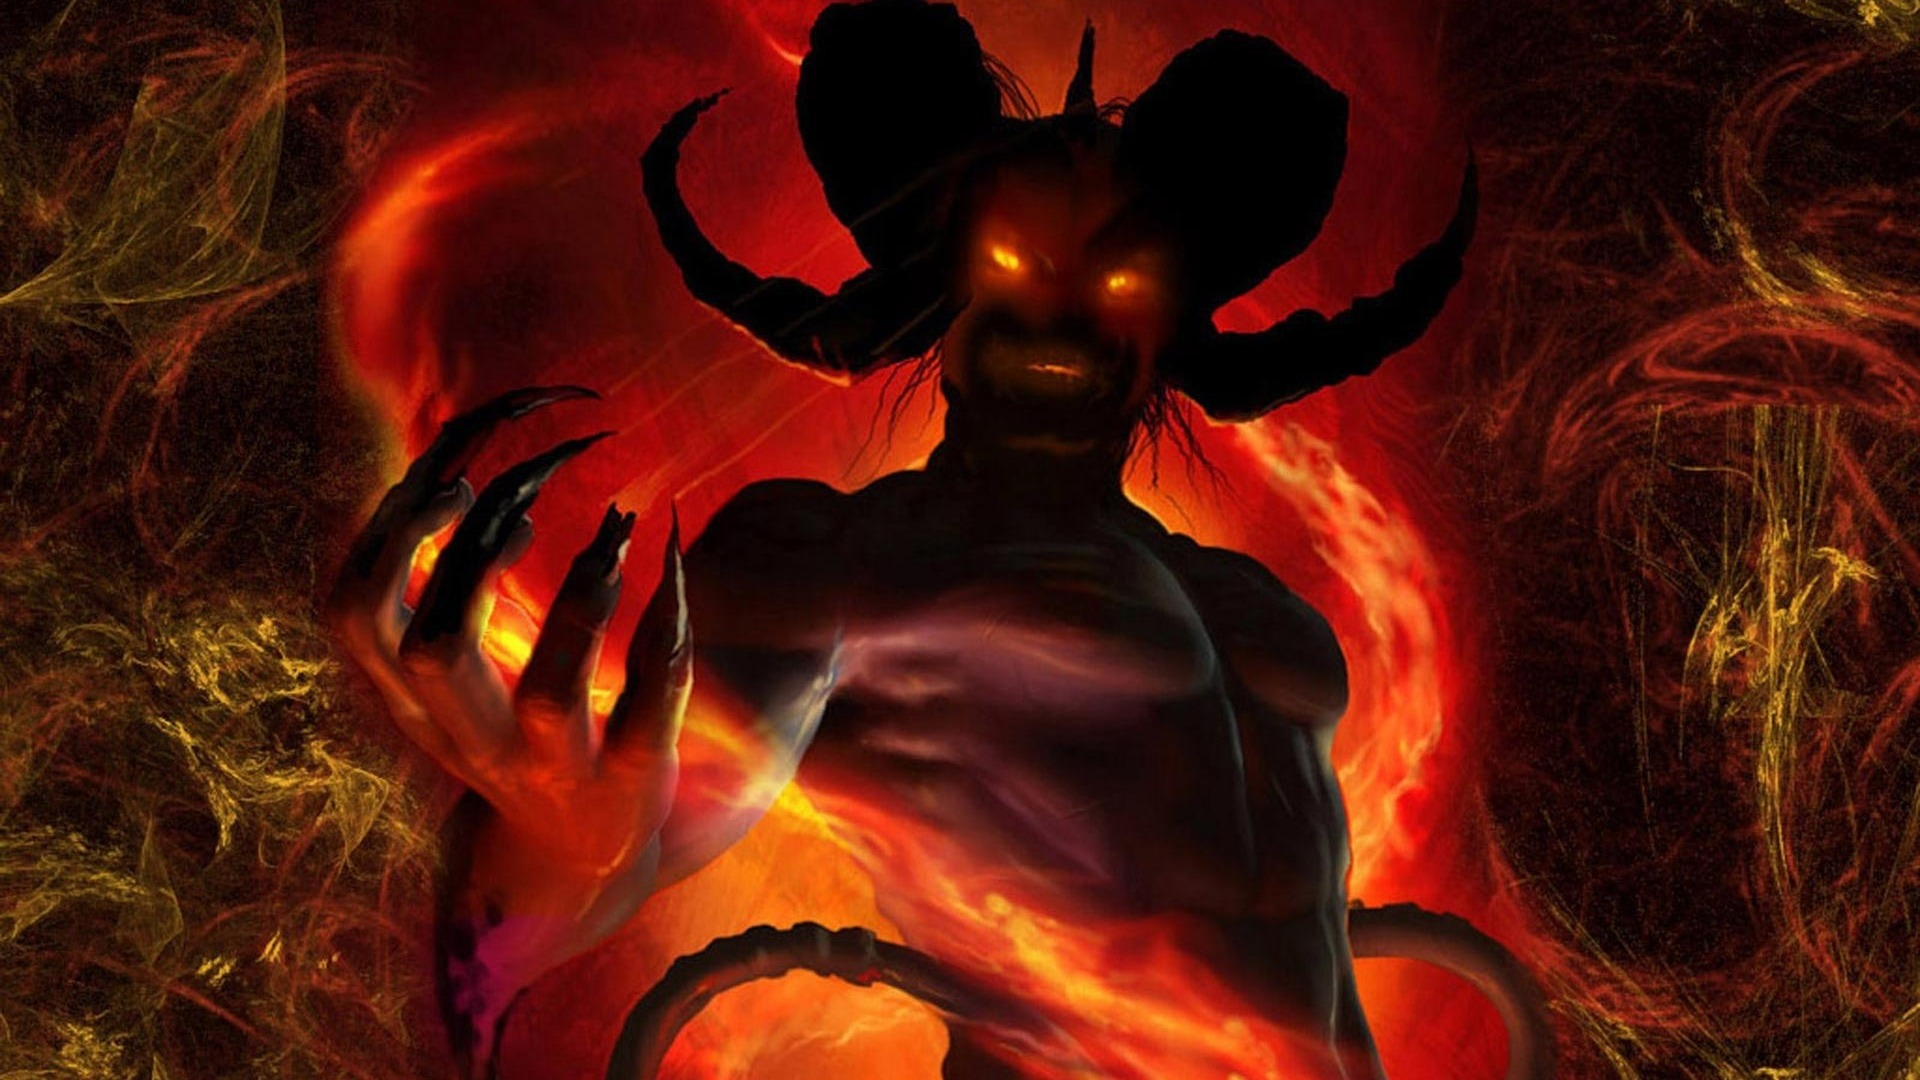 Devil Backgrounds, Compatible - PC, Mobile, Gadgets| 1920x1080 px